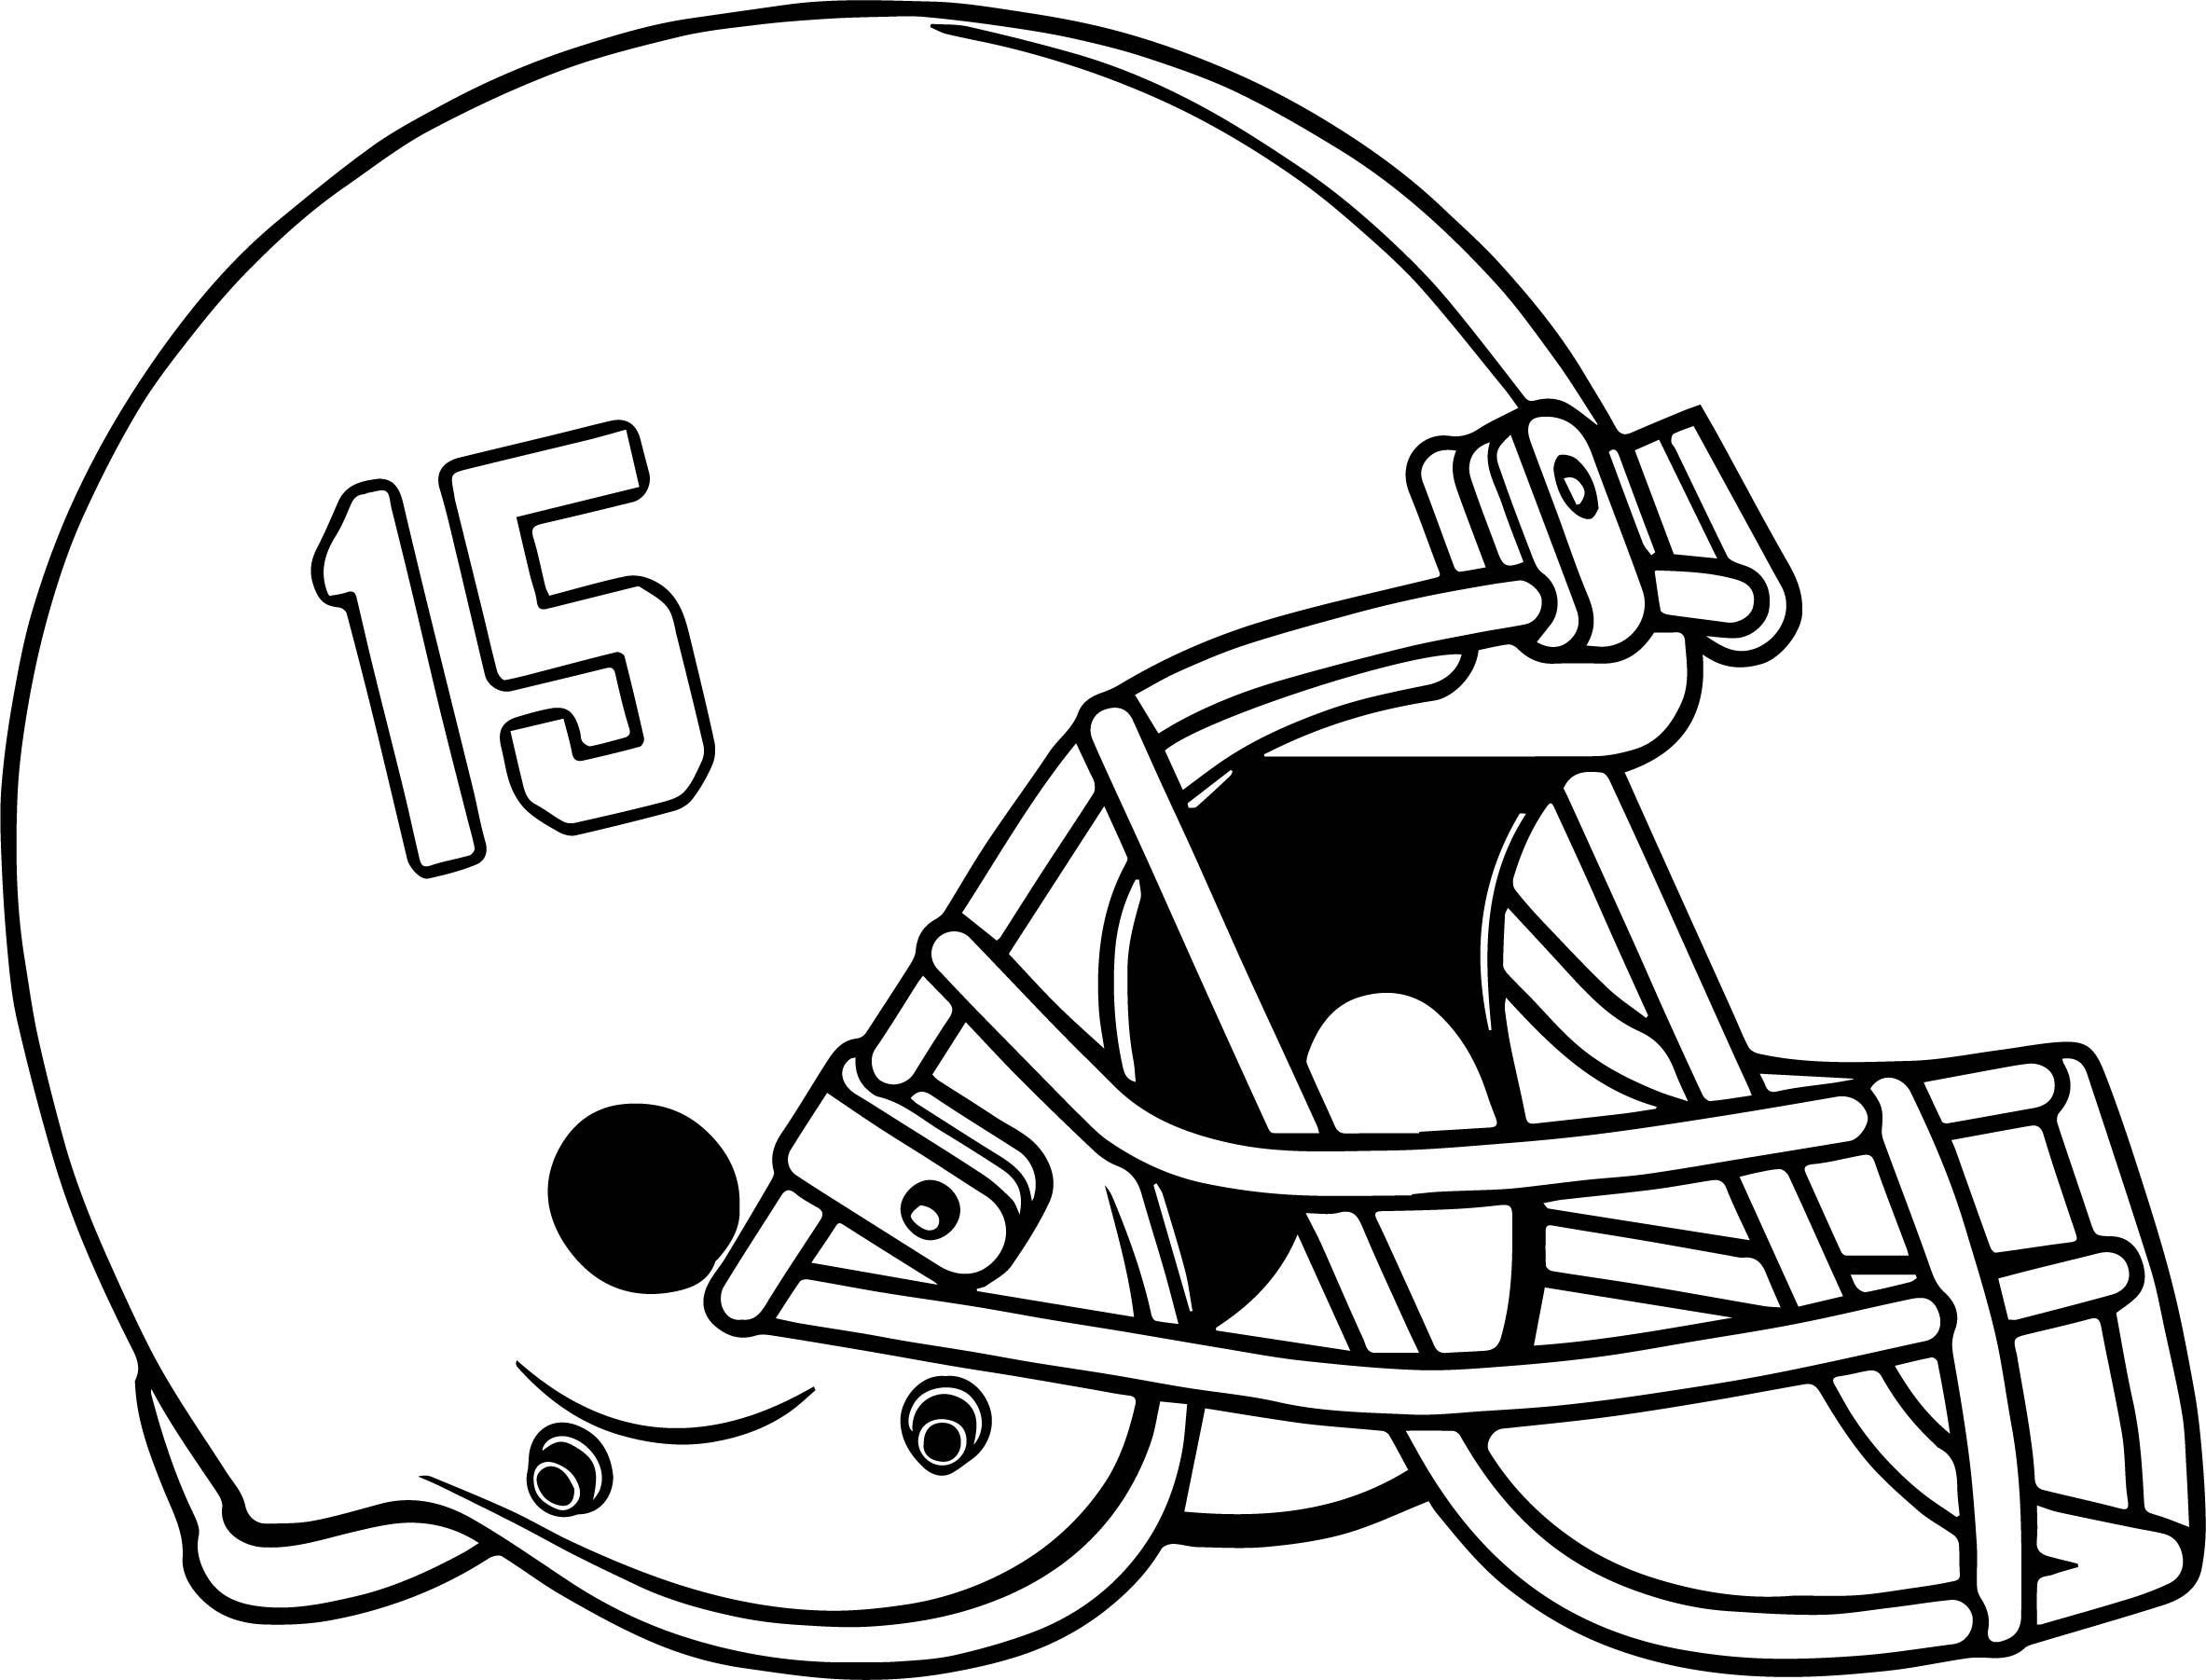 Bama Alabama Helmet Fifteen Number Coloring Page Football